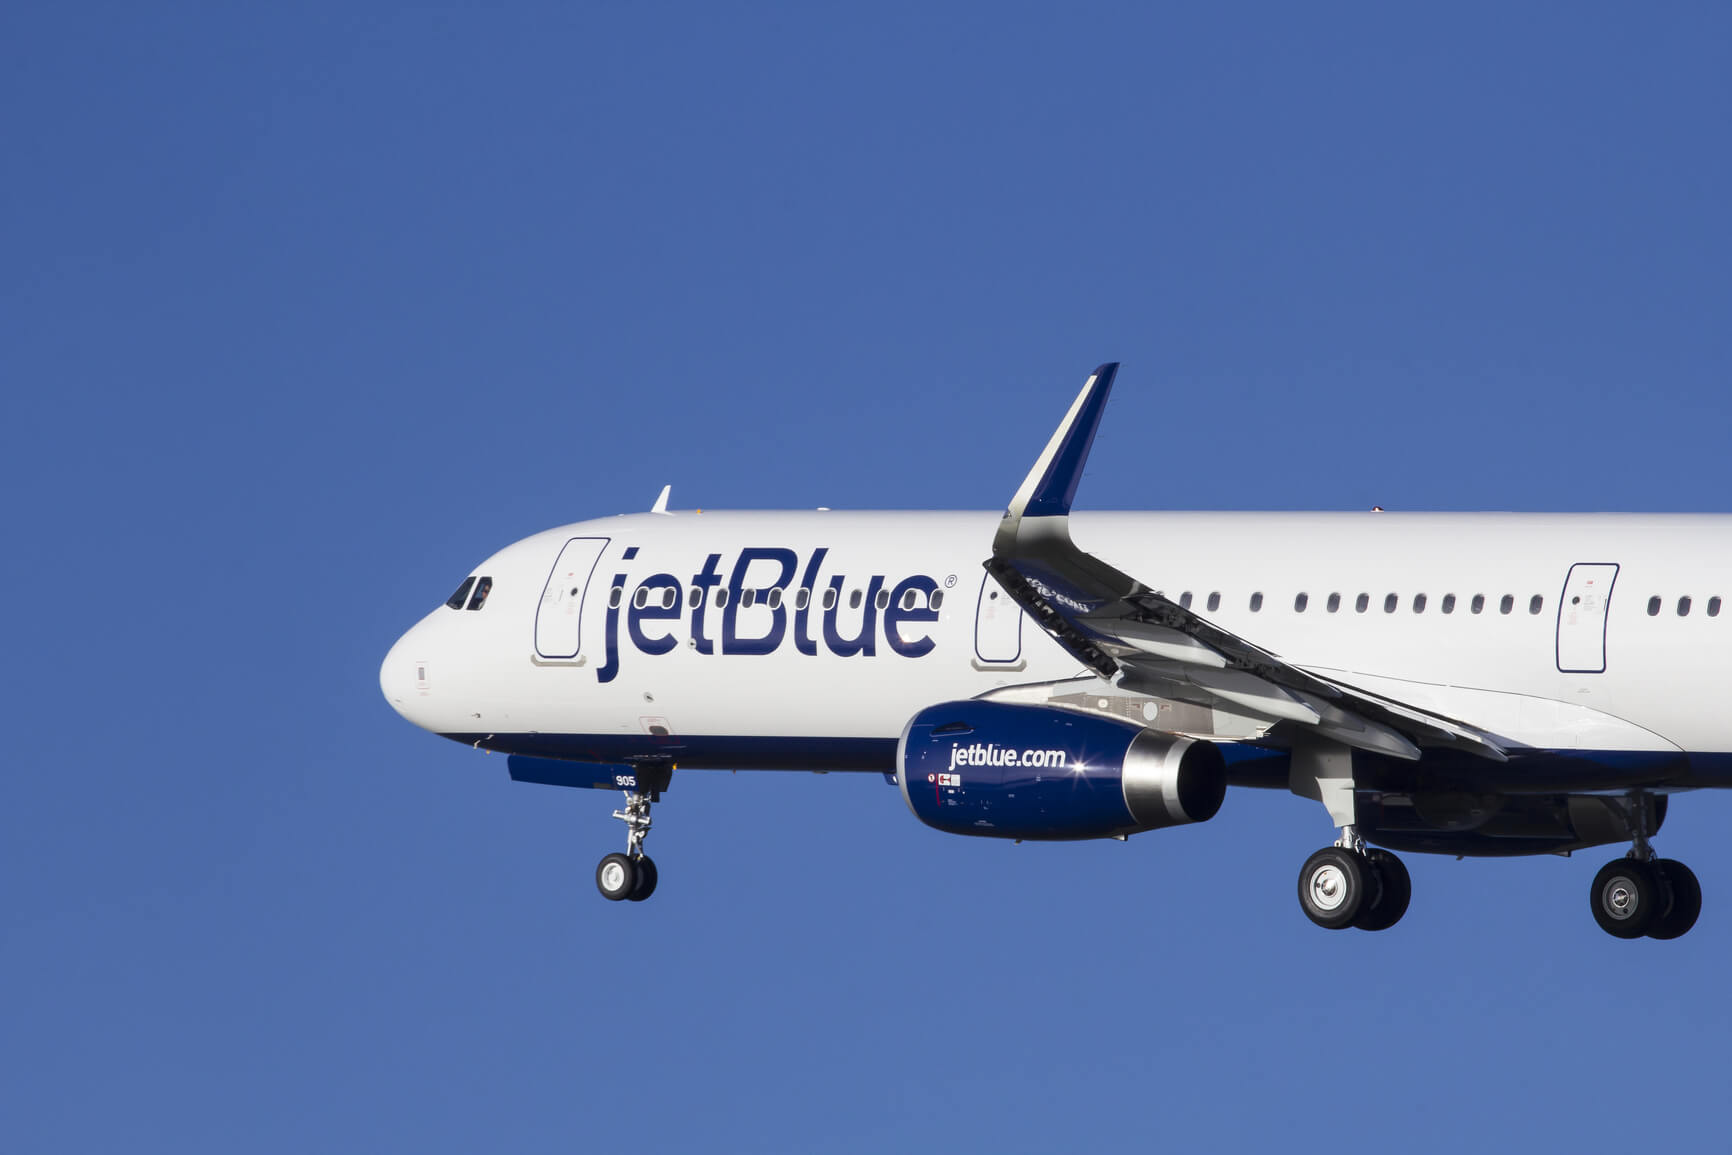 FLASH SALE: JetBlue flights from only $19 one-way (e.g. Long Beach to Oakland)